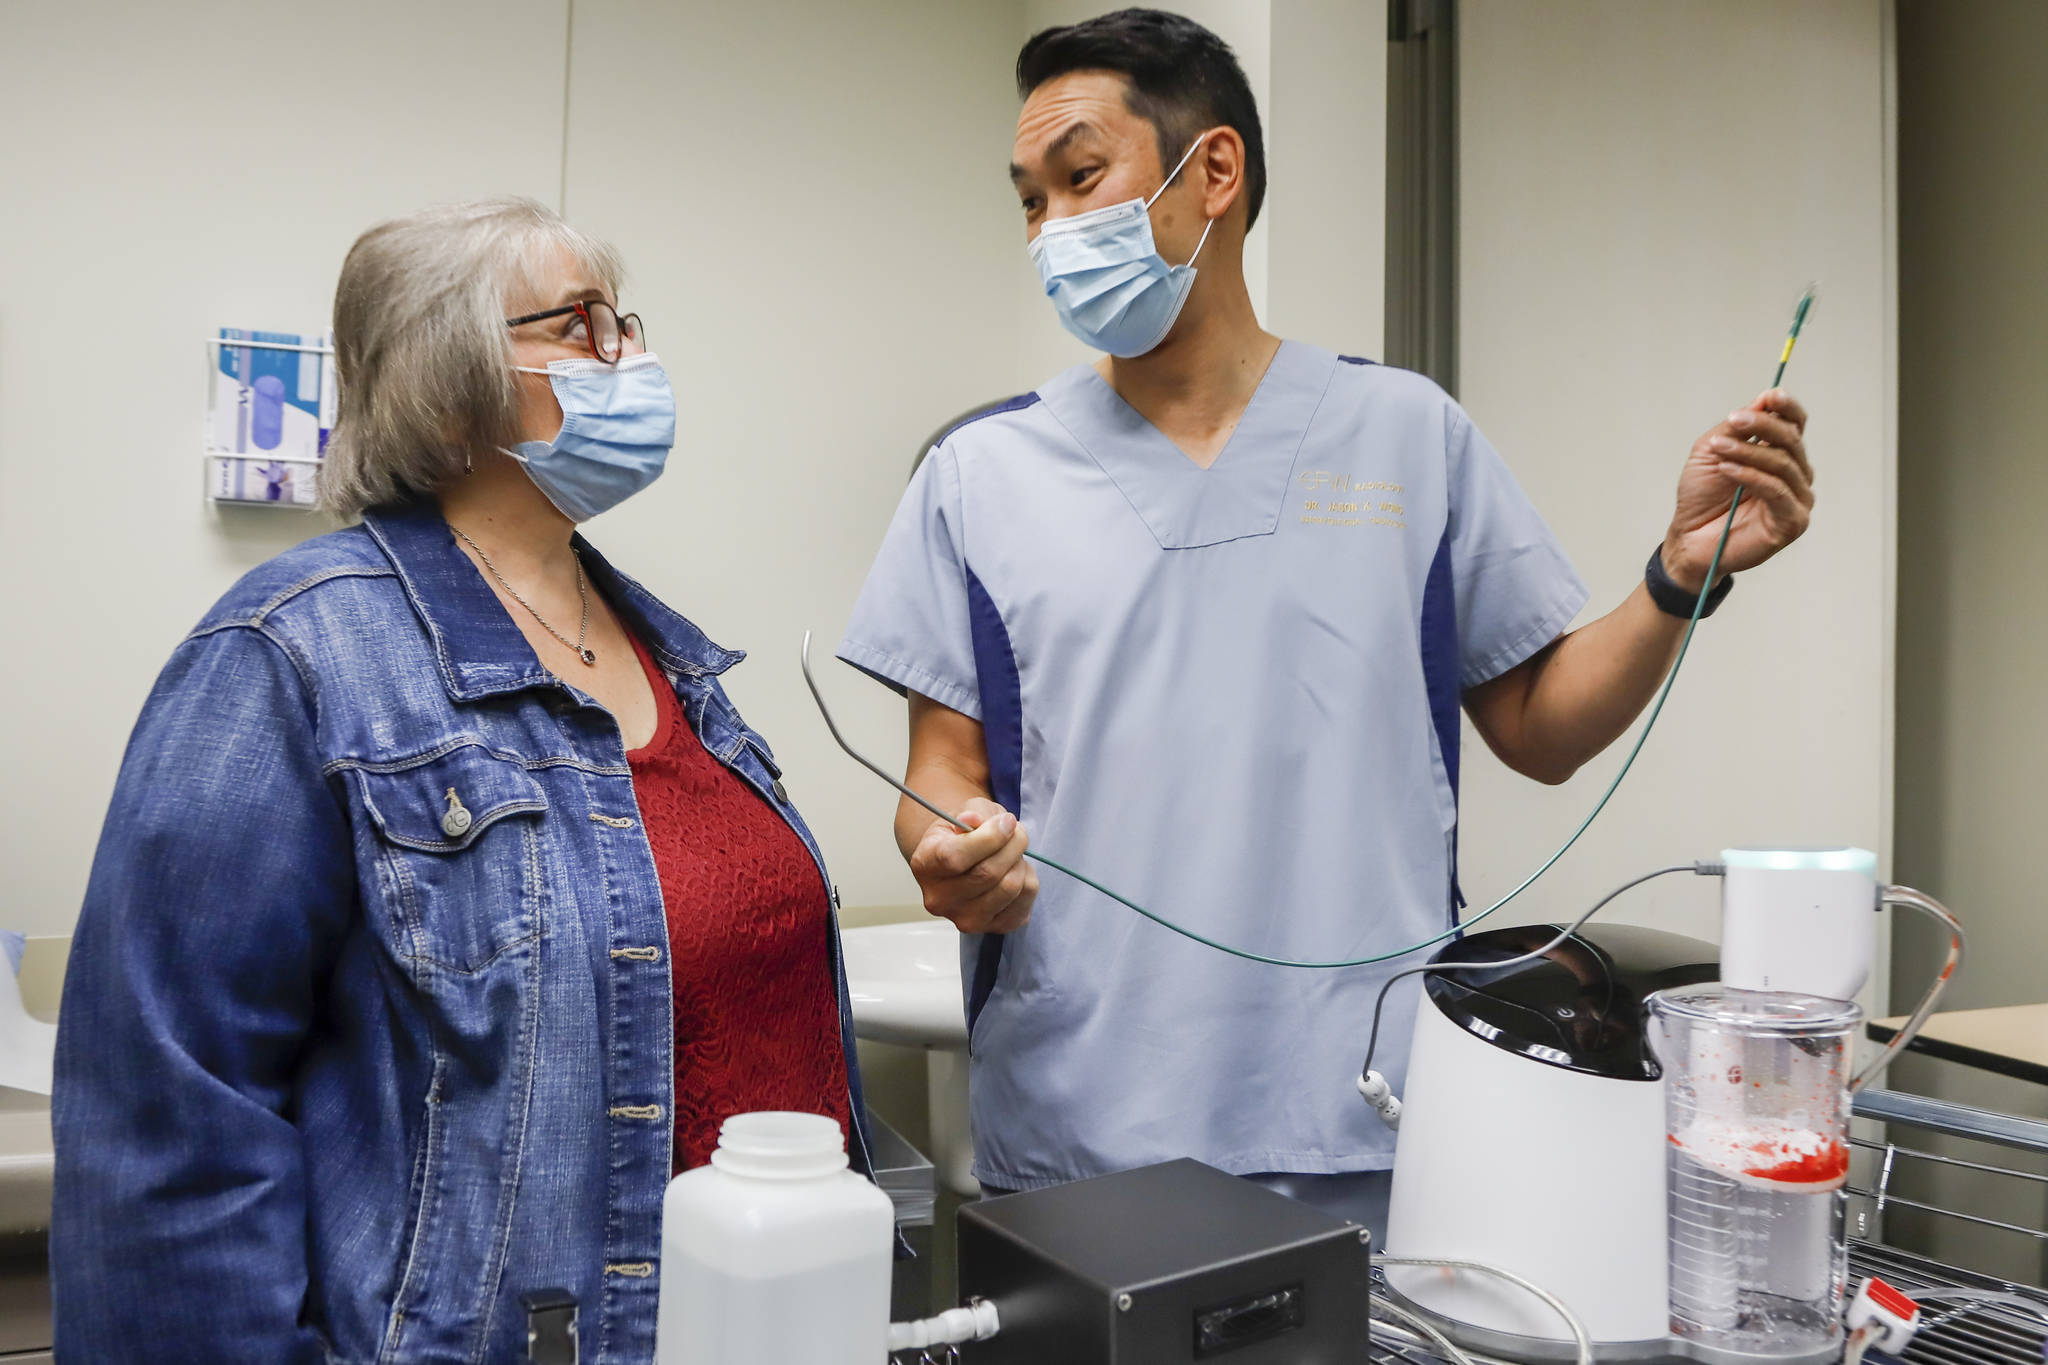 Brenda Crowell, left, and Dr. Jason Wong, display a CAT12 device, which Wong used to save Crowell's life after she developed a deadly blood clot caused by COVID-19, in Calgary, Alta., Thursday, Aug. 19, 2021. THE CANADIAN PRESS/Jeff McIntosh